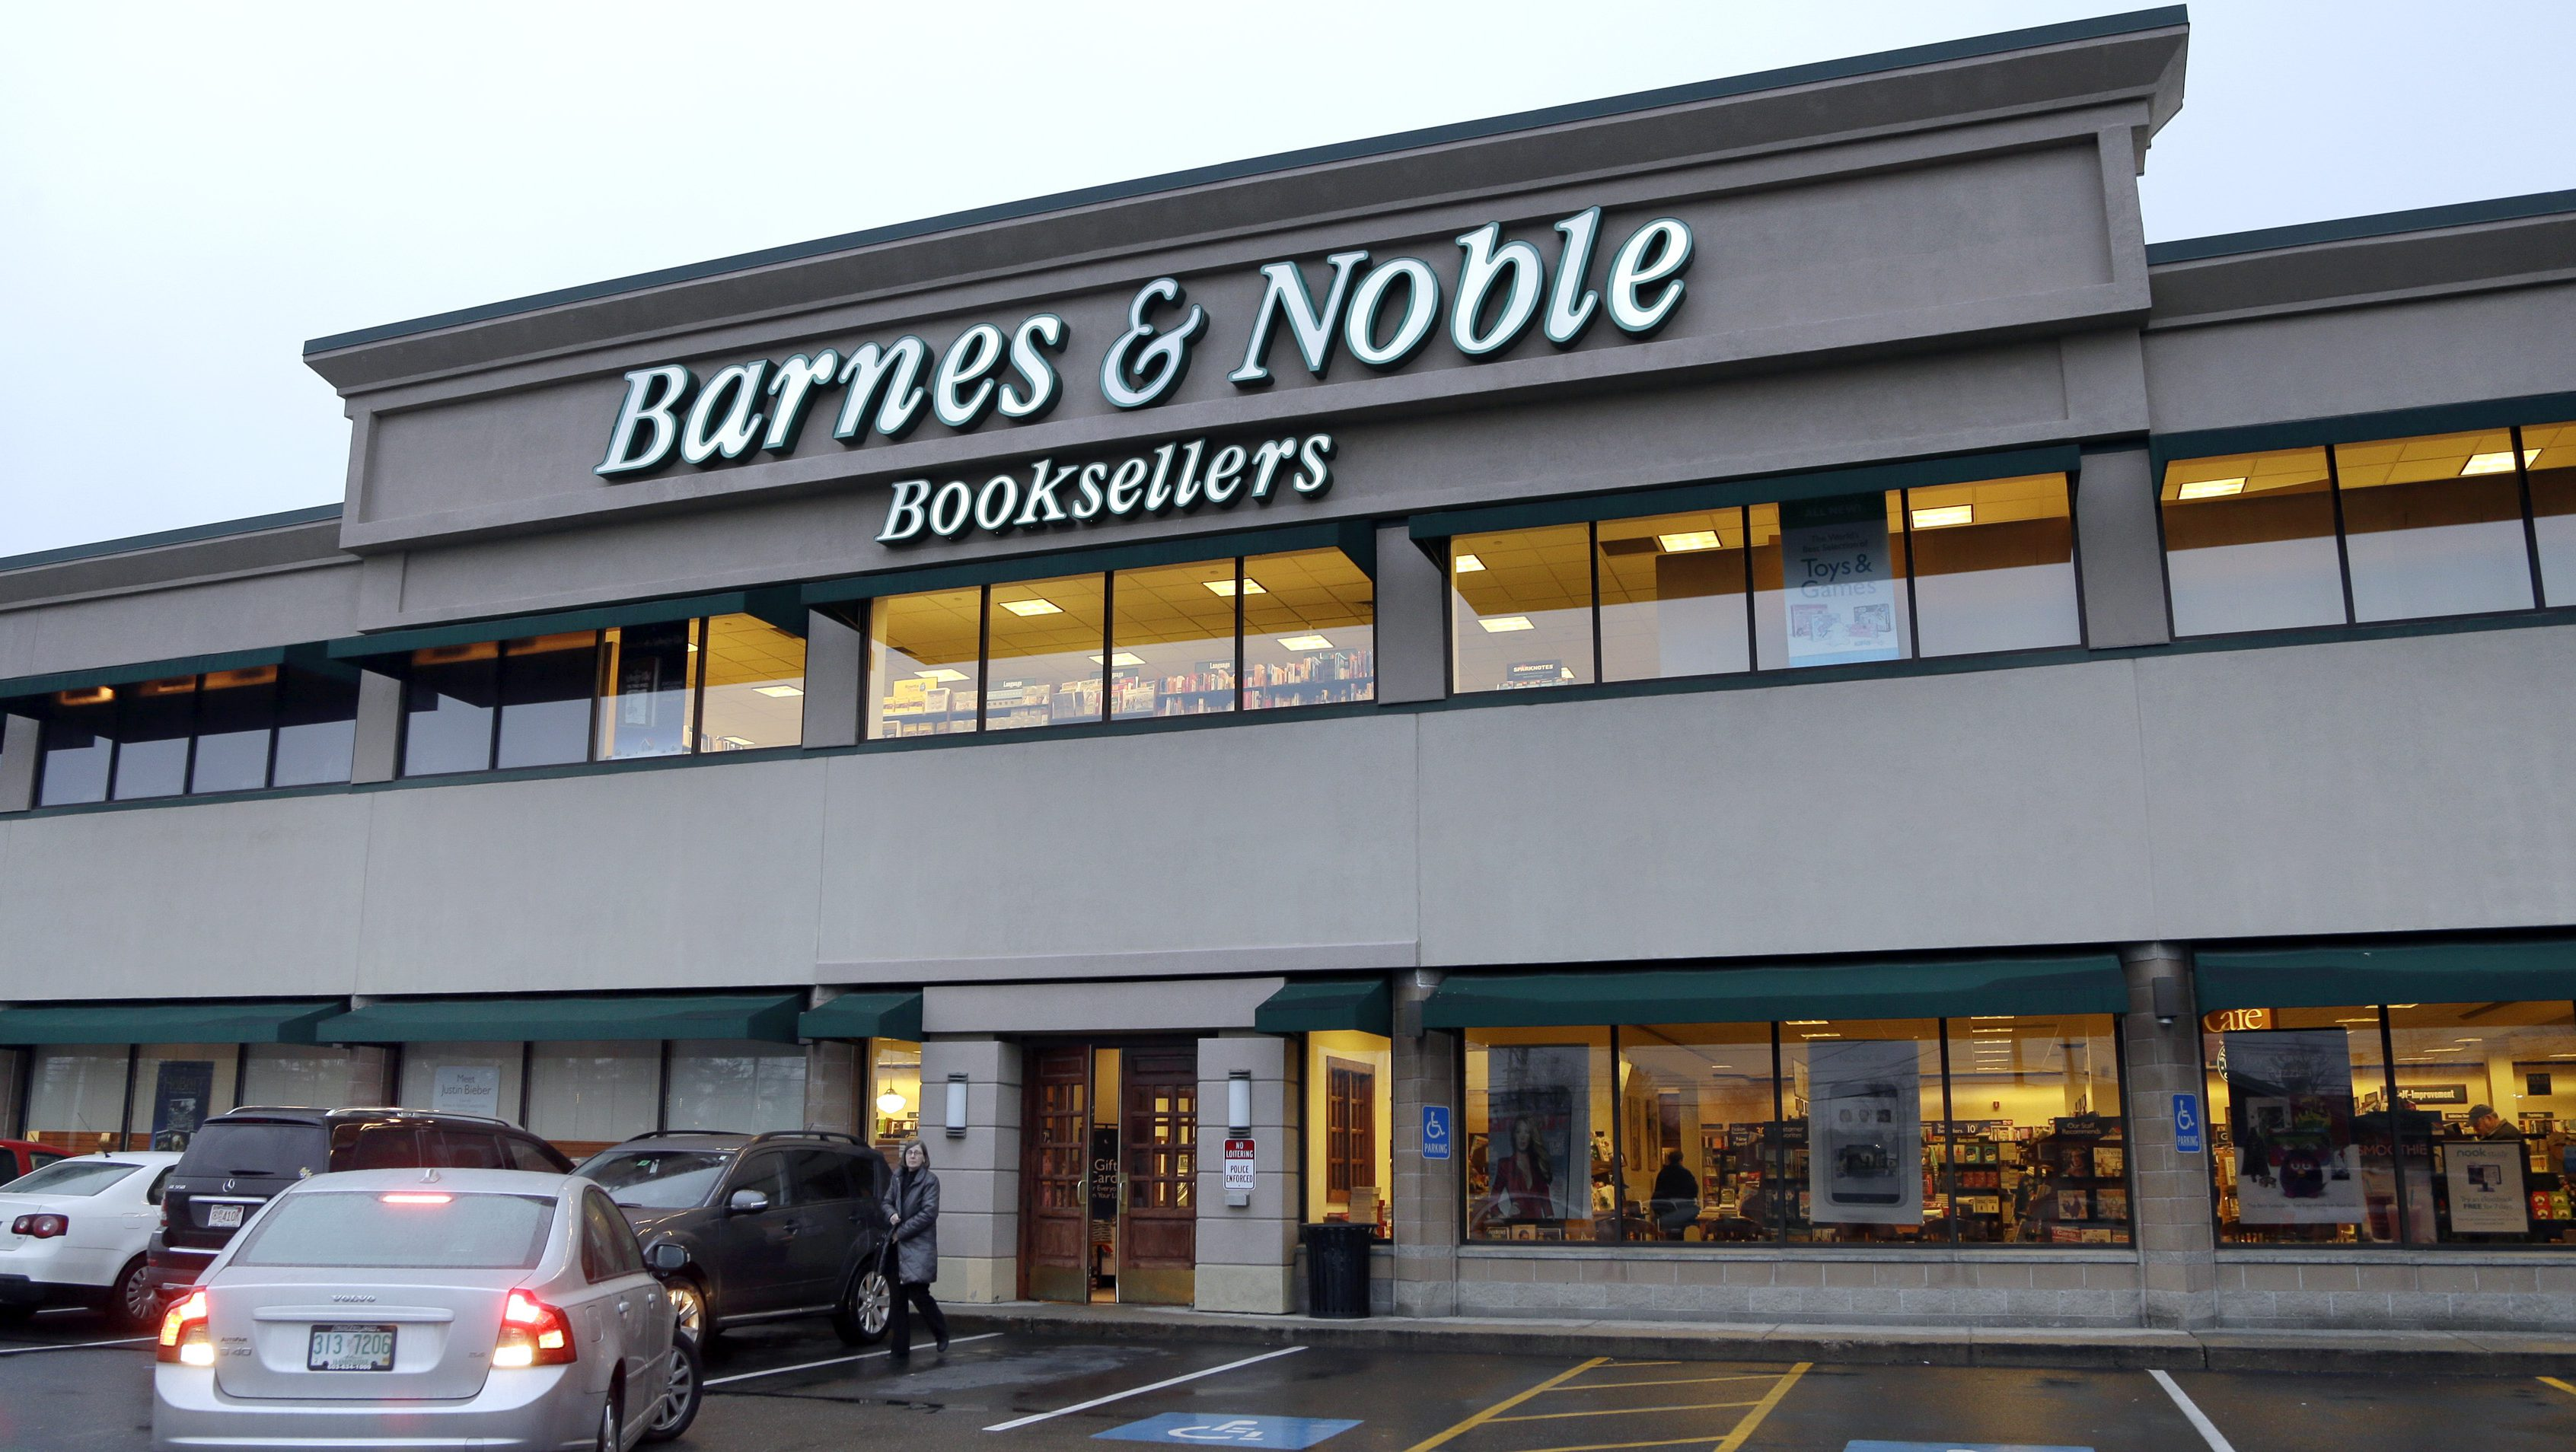 The exterior of a Barnes & Noble bookstore is seen in Salem, N.H., Tuesday, Nov. 27, 2012. Barnes & Noble on Thursday, Nov. 29, 2012, said it turned a profit in its fiscal second-quarter as higher revenue from its Nook e-book and e-bookstore division offset a decline at retail stores. The largest traditional book retailer has been fighting tough competition from online retailers and discount stores by investing heavily in its Nook e-book reader(AP Photo/Elise Amendola)